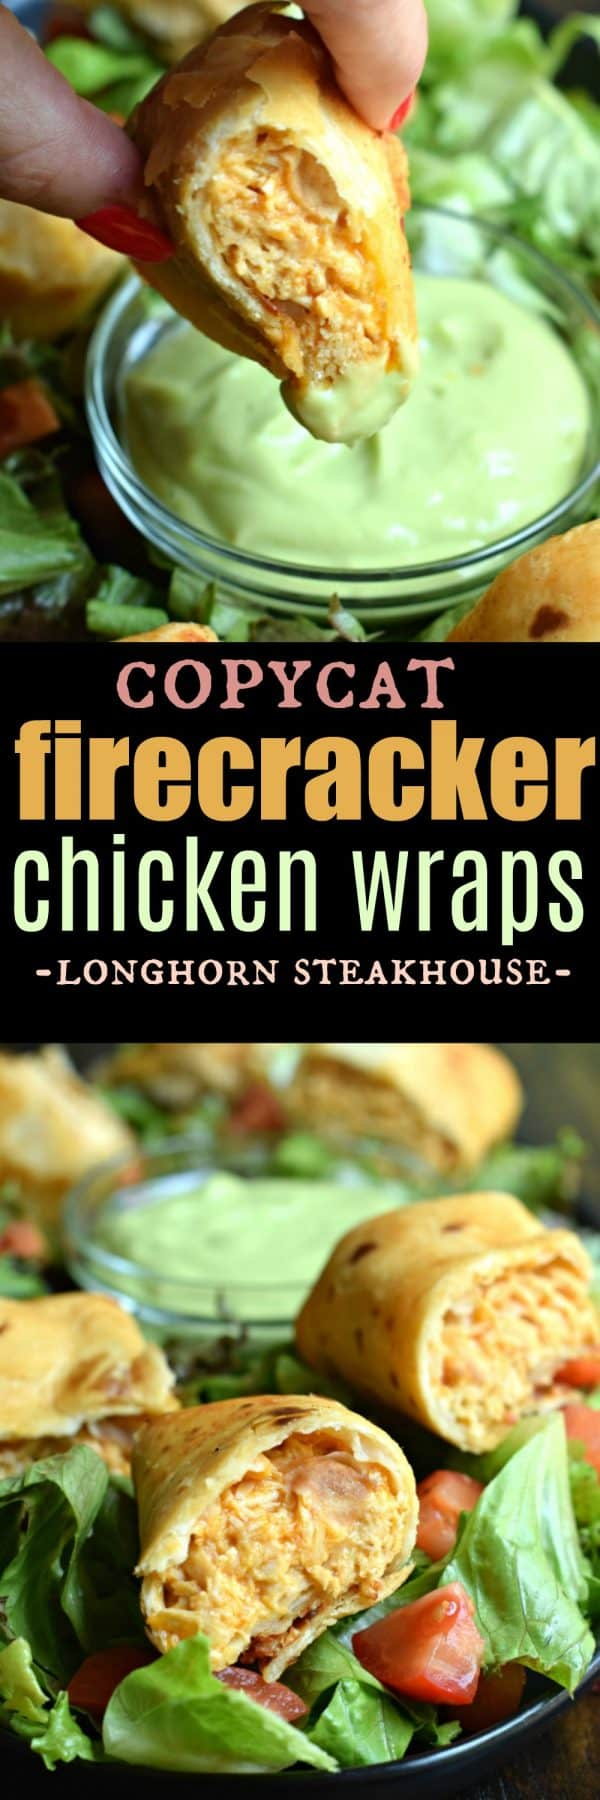 Firecracker Chicken Wraps with Avocado Lime dipping sauce recipe #chicken #appetizers #gameday #copycatrecipe